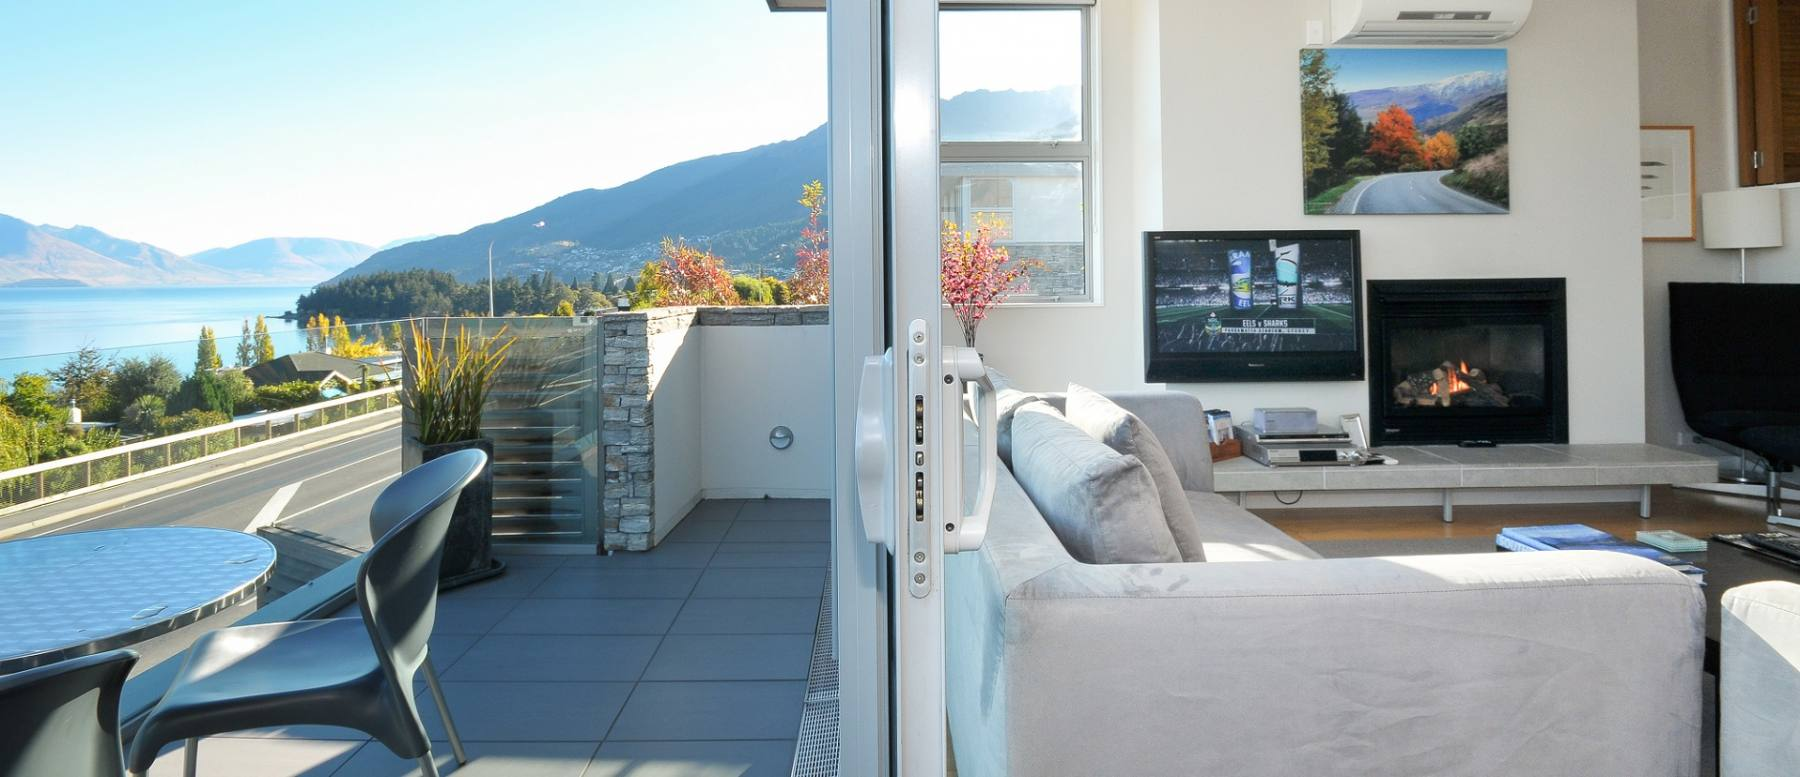 Luxury accommodation in queenstown apartments queenstown for Luxury hotel finder